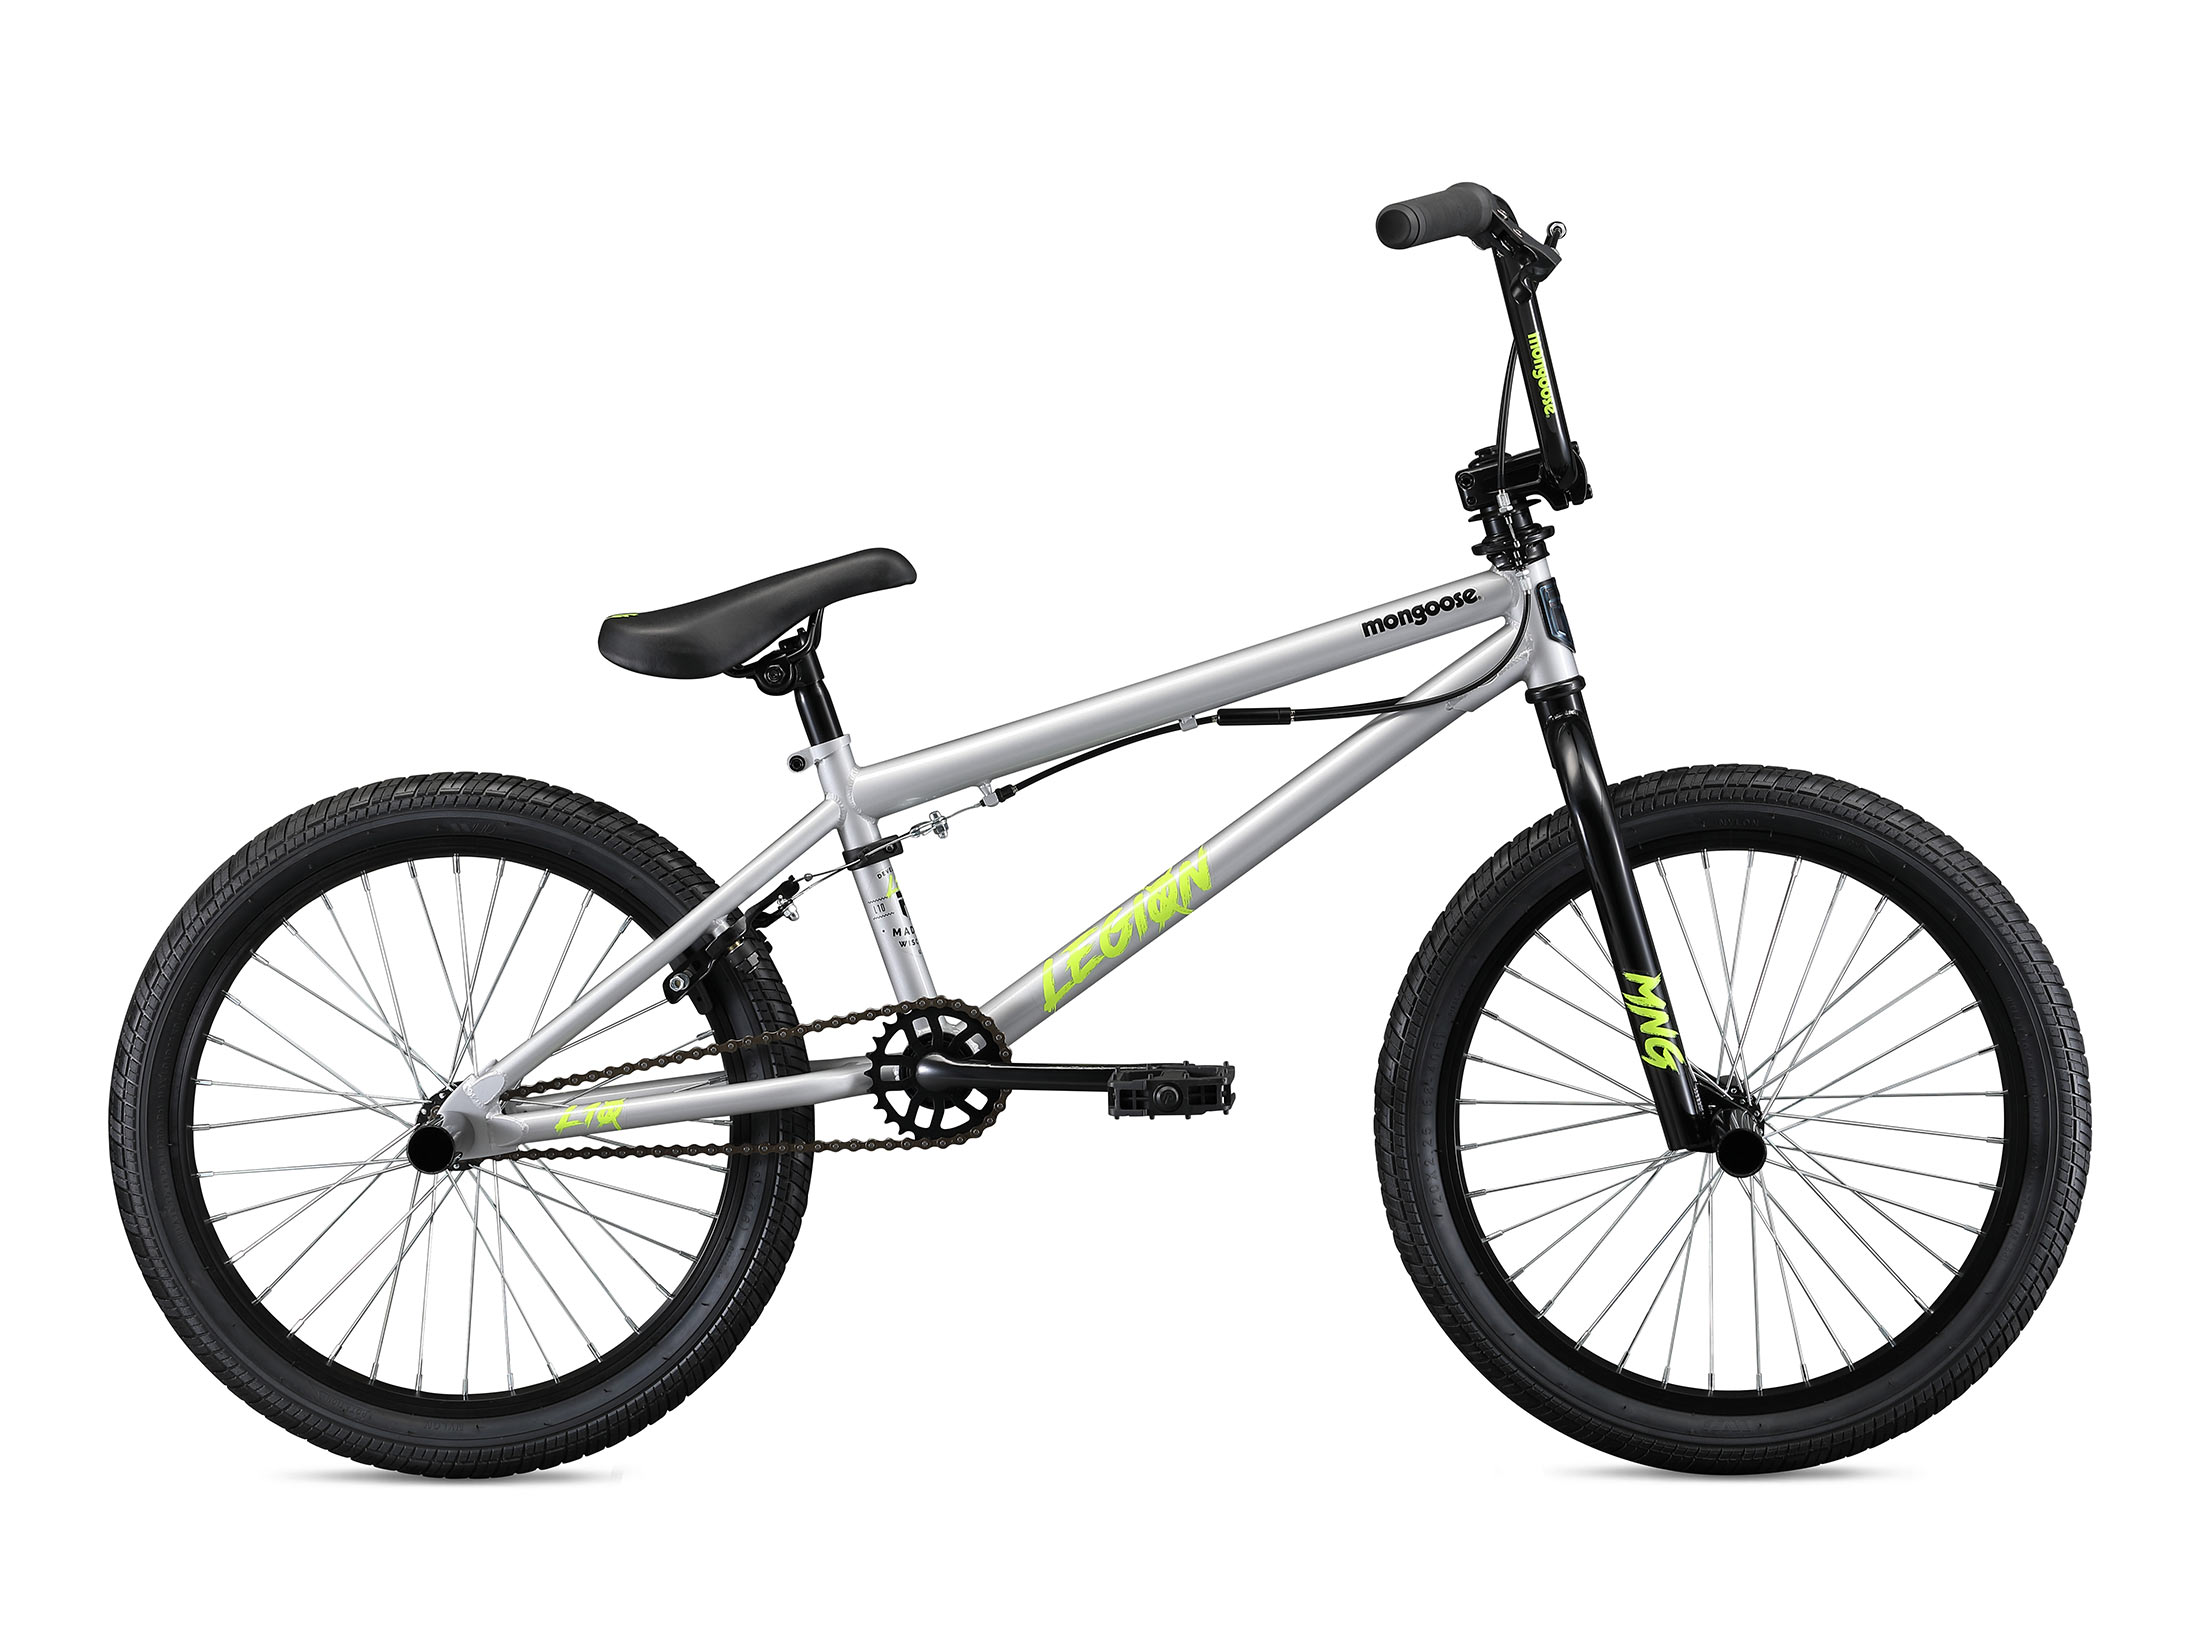 Ποδήλατο Mongoose Legion L10 BMX 20